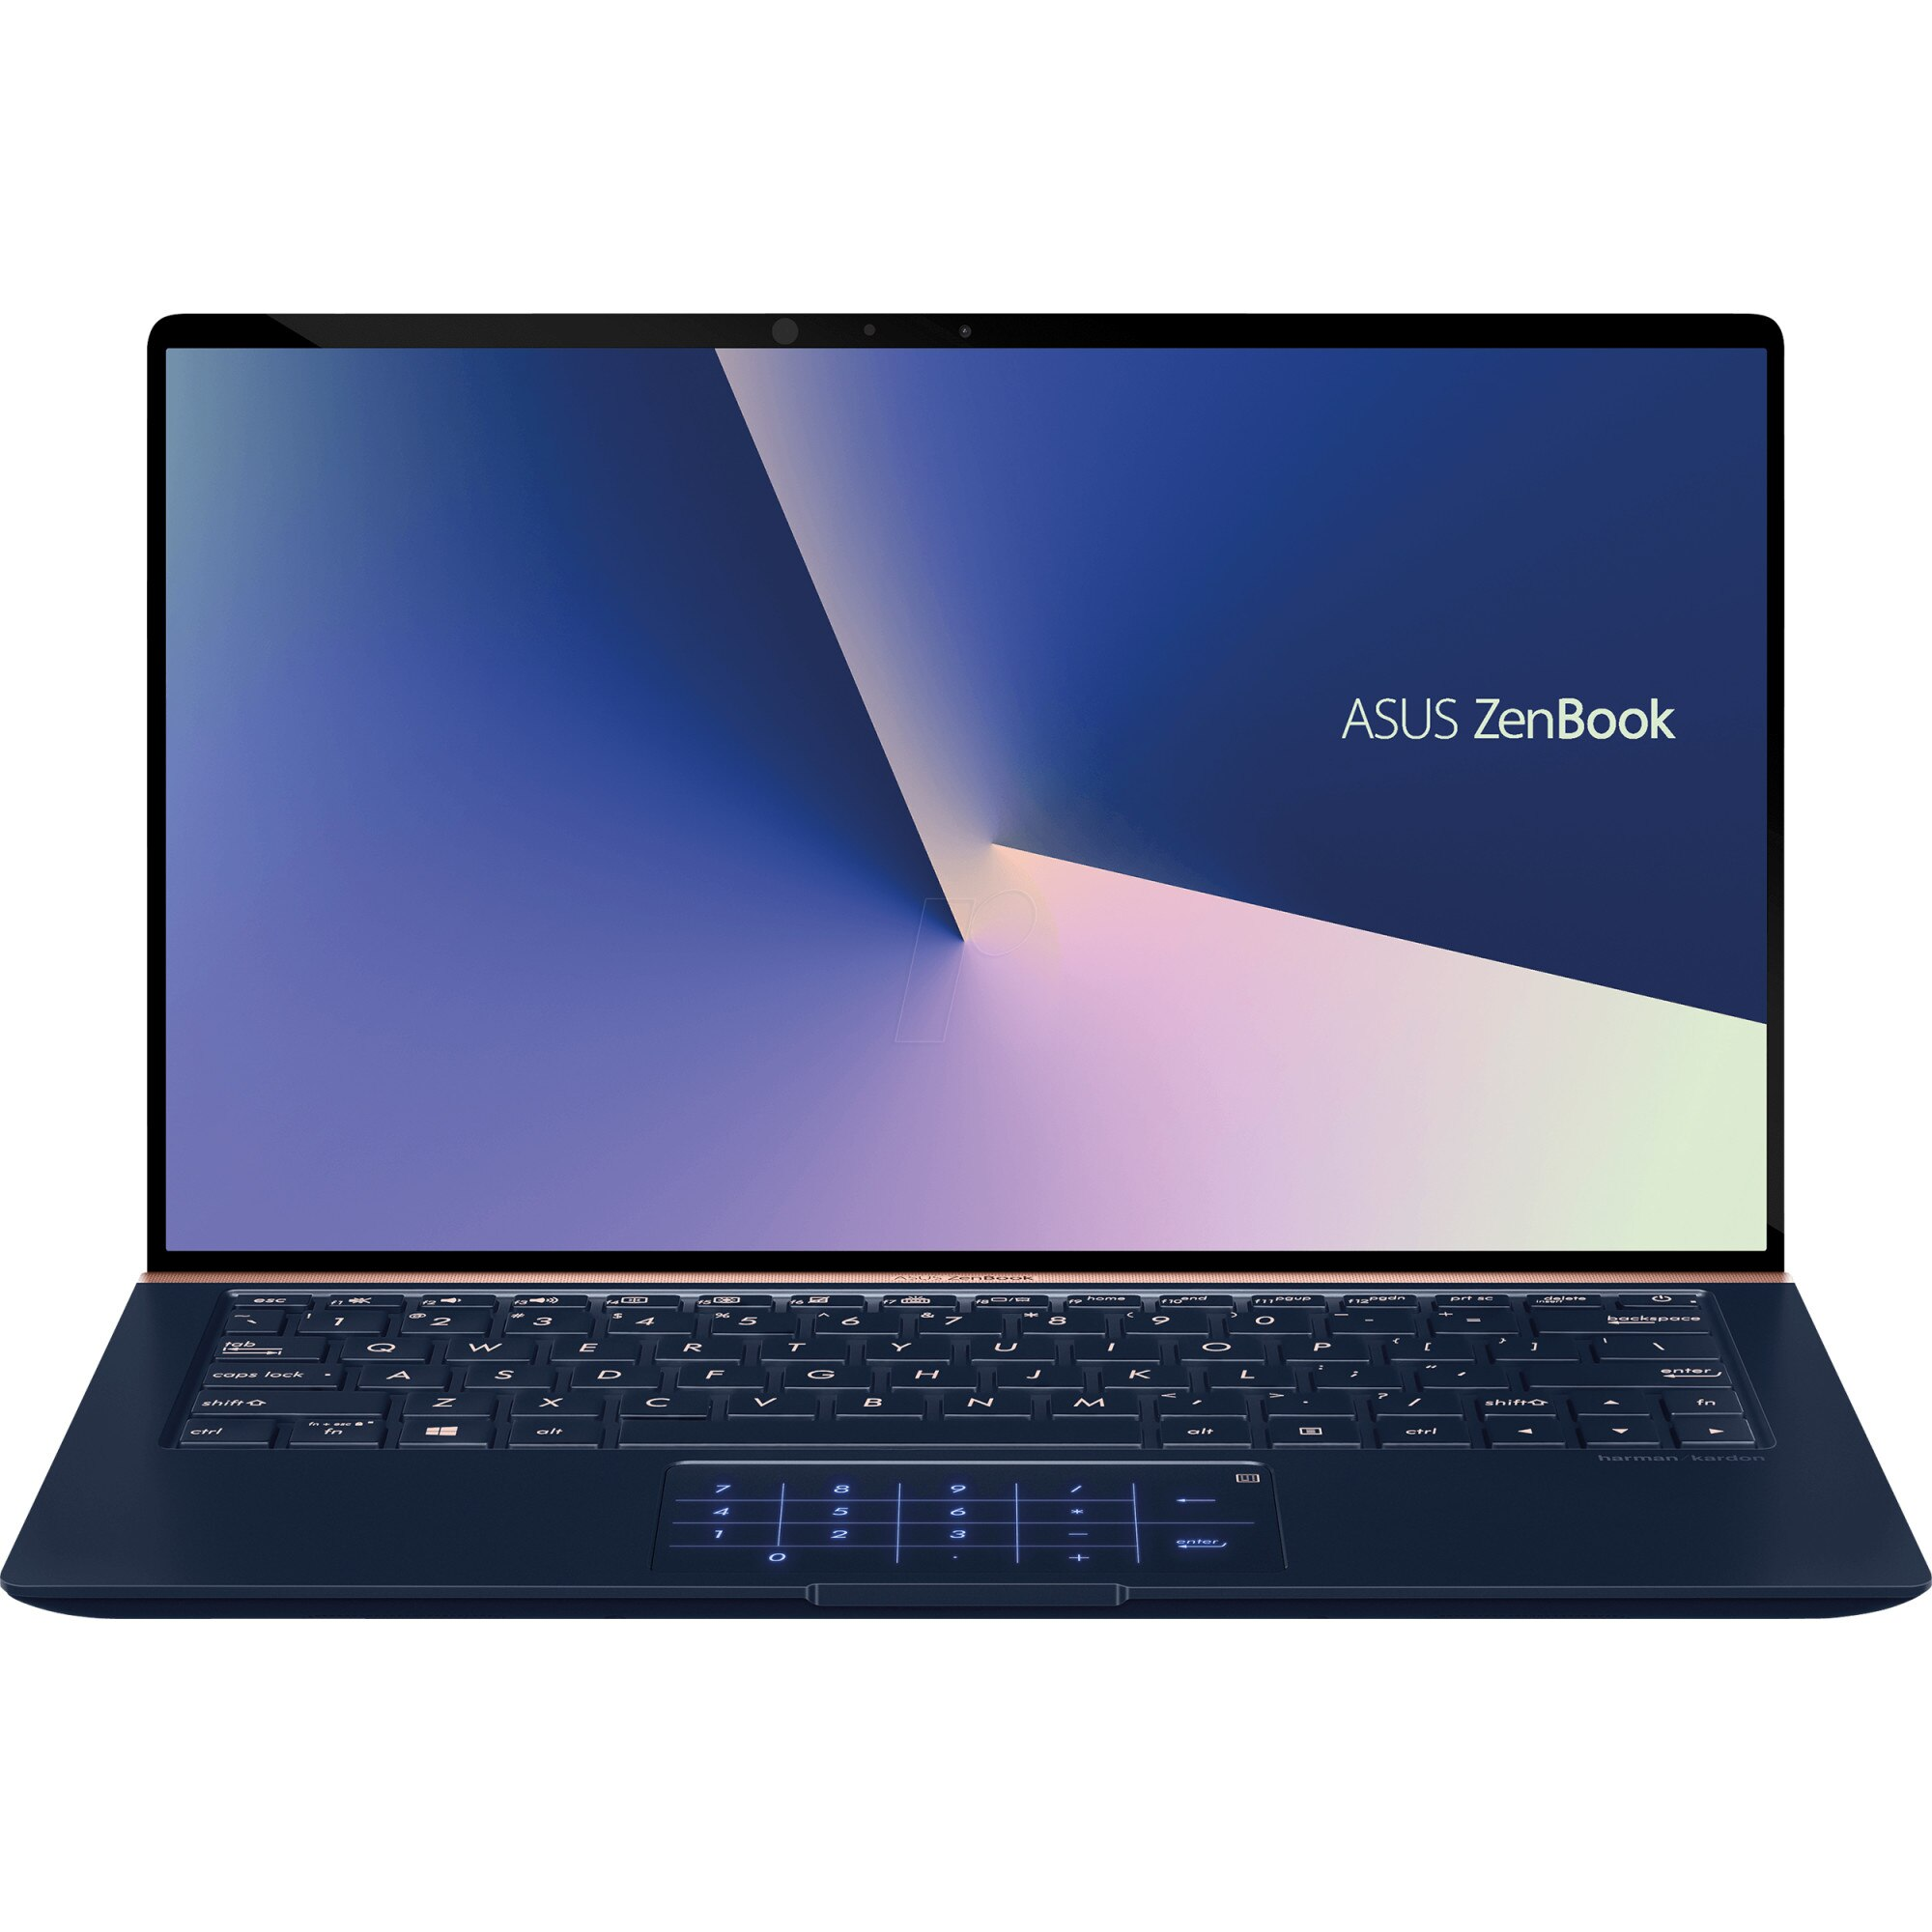 "Fotografie Laptop ultraportabil ASUS ZenBook 13 UX333FN cu procesor Intel® Core™ i7-8565U pana la 4.60 GHz, Whiskey Lake, 13.3"", Full HD, 8GB, 256GB SSD, NVIDIA GeForce MX150 2GB, Endless OS, Royal Blue"